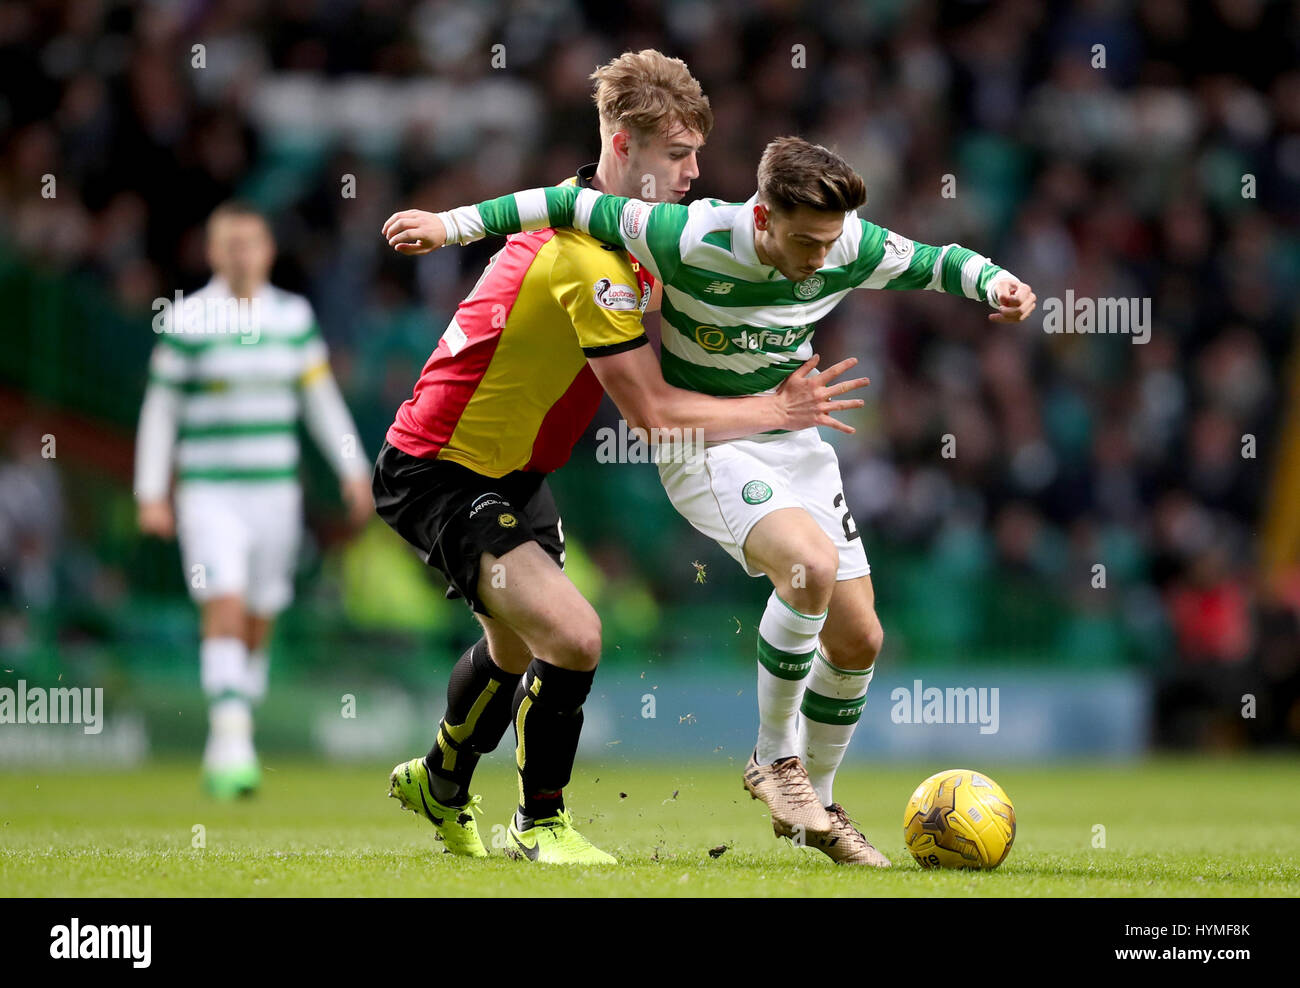 Celtic's Patrick Roberts and Partick Thistle's Liam Lindsay battle for the ball during the Ladbrokes Scottish - Stock Image